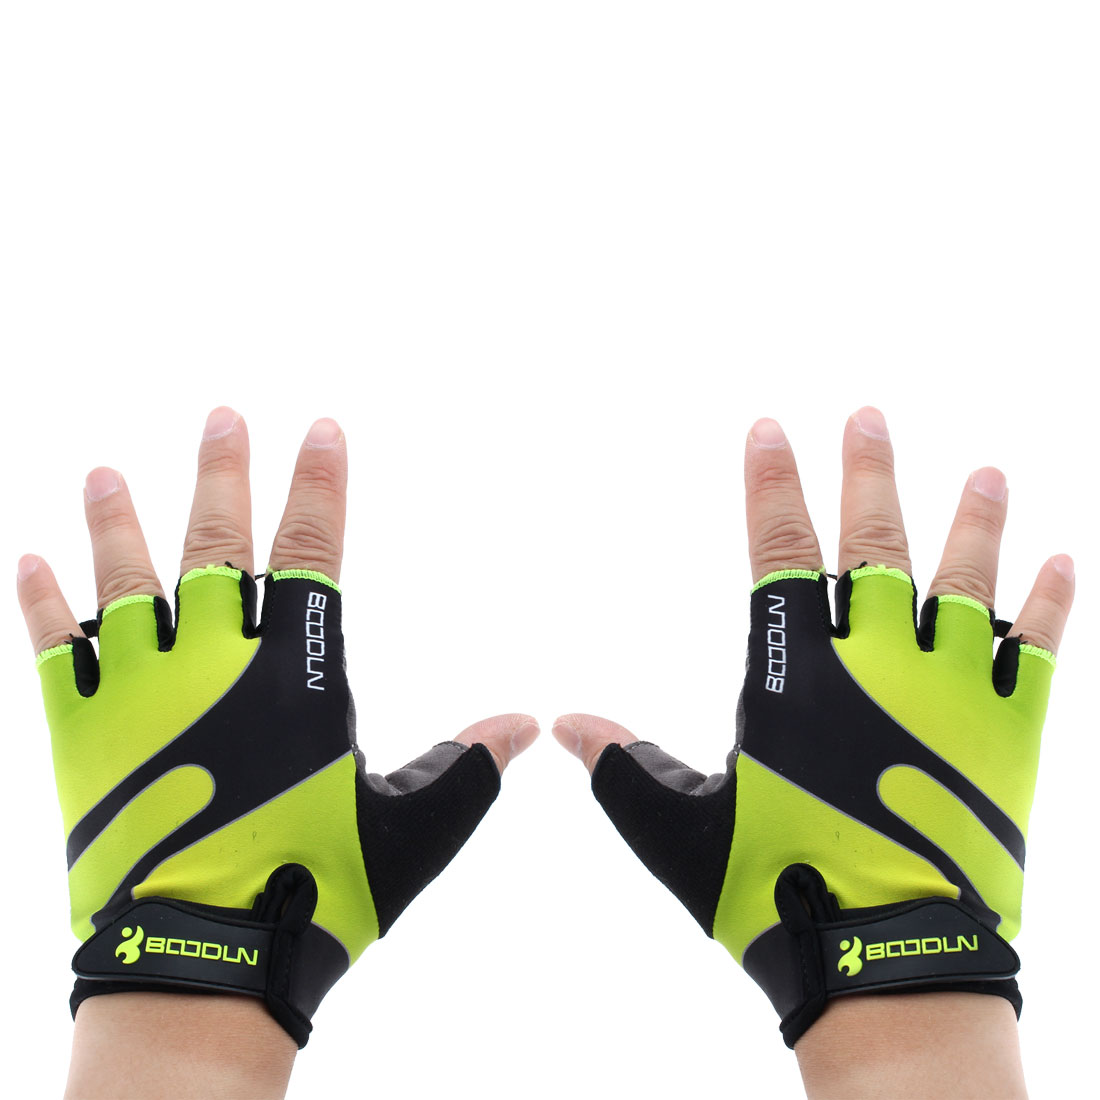 BOODUN Authorized Polyester Exercise Sports Lifting Training Bodybuilding Wrist Protector Half Finger Fitness Gloves Fluorescence Green S Pair